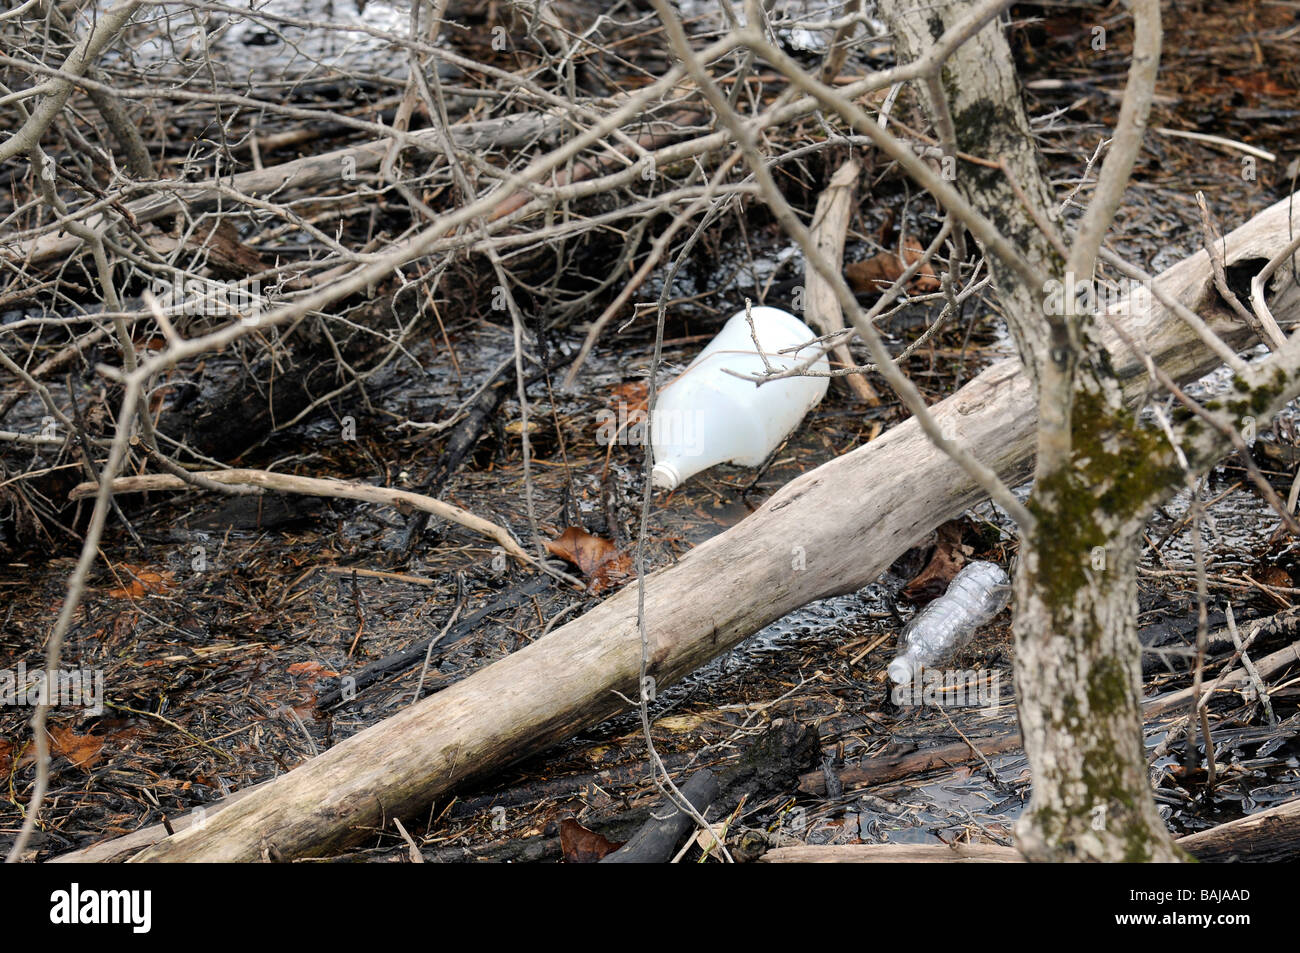 Trash and litter trapped in branch on water - Stock Image